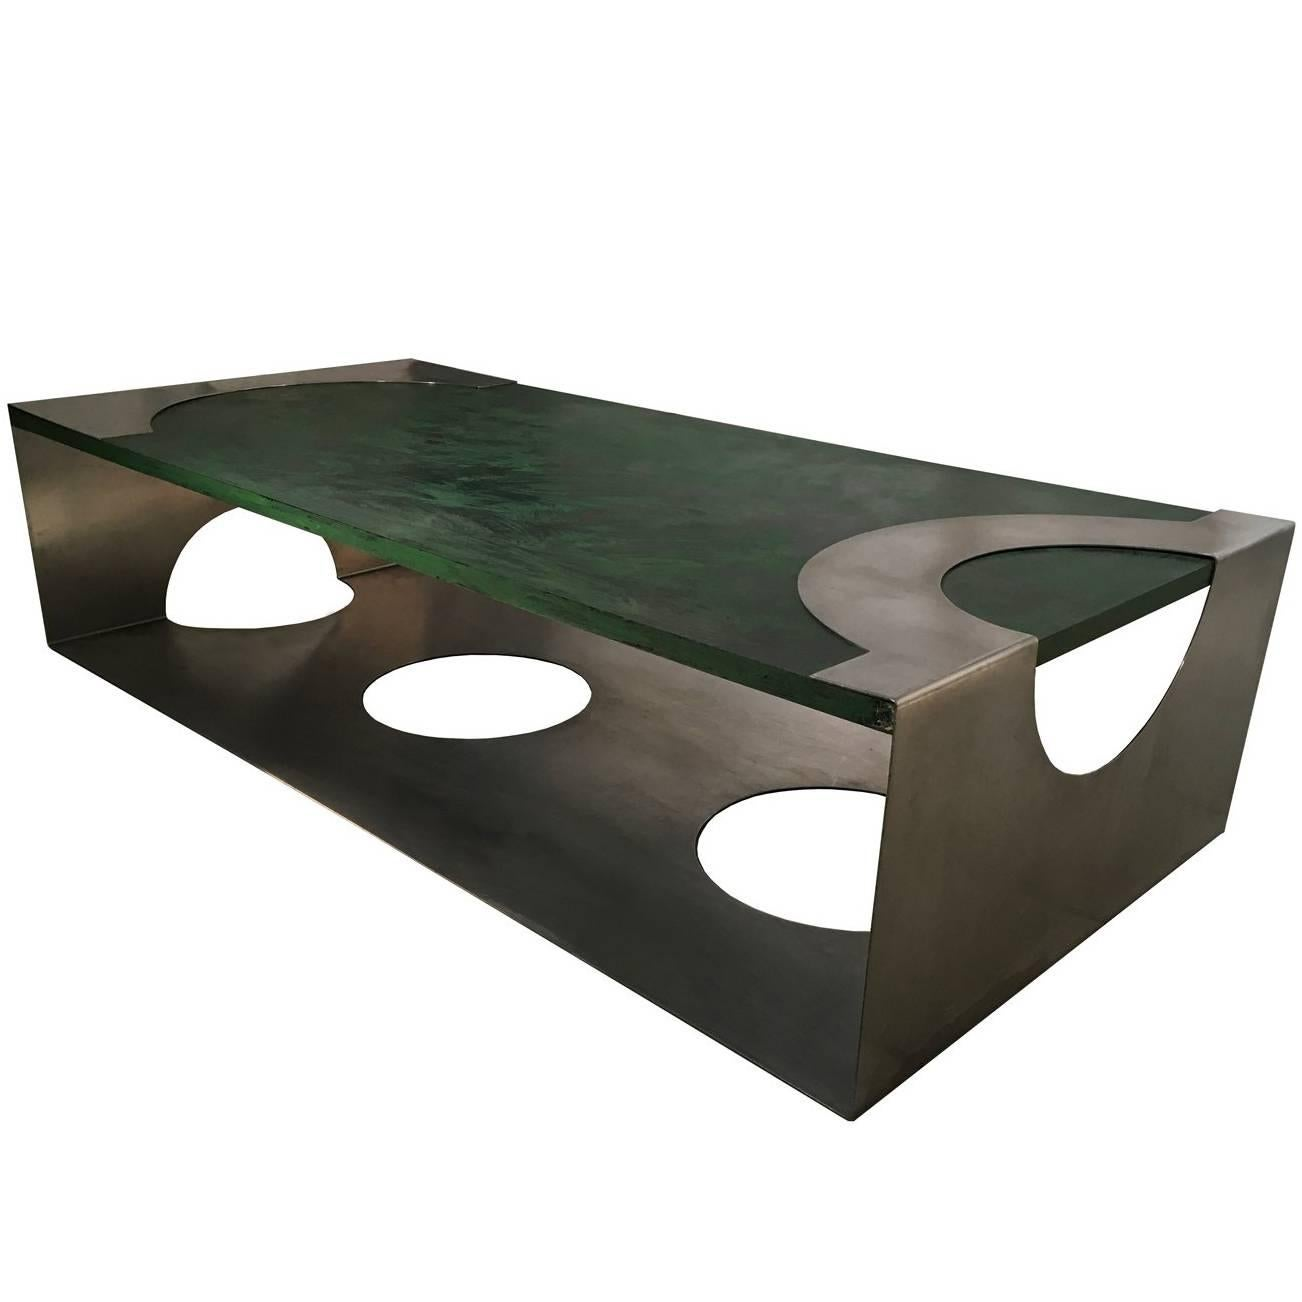 1970 Post Modern Green Patinated Wood and Stainless Steel Delagneau Coffee Table